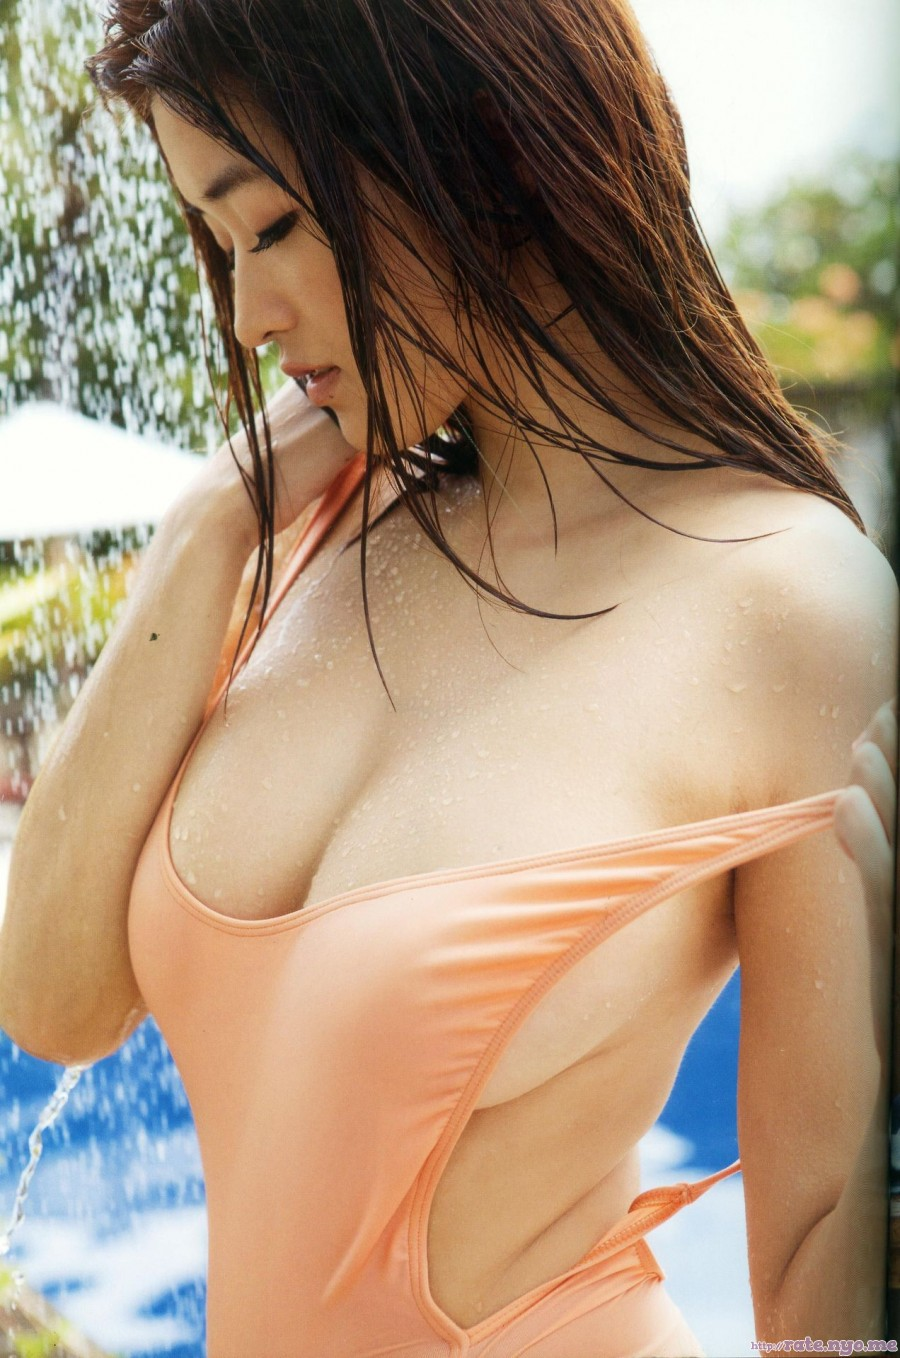 breasts cleavage japanese mai_hakase midriff one-piece shoulders sleeveless undressing wet